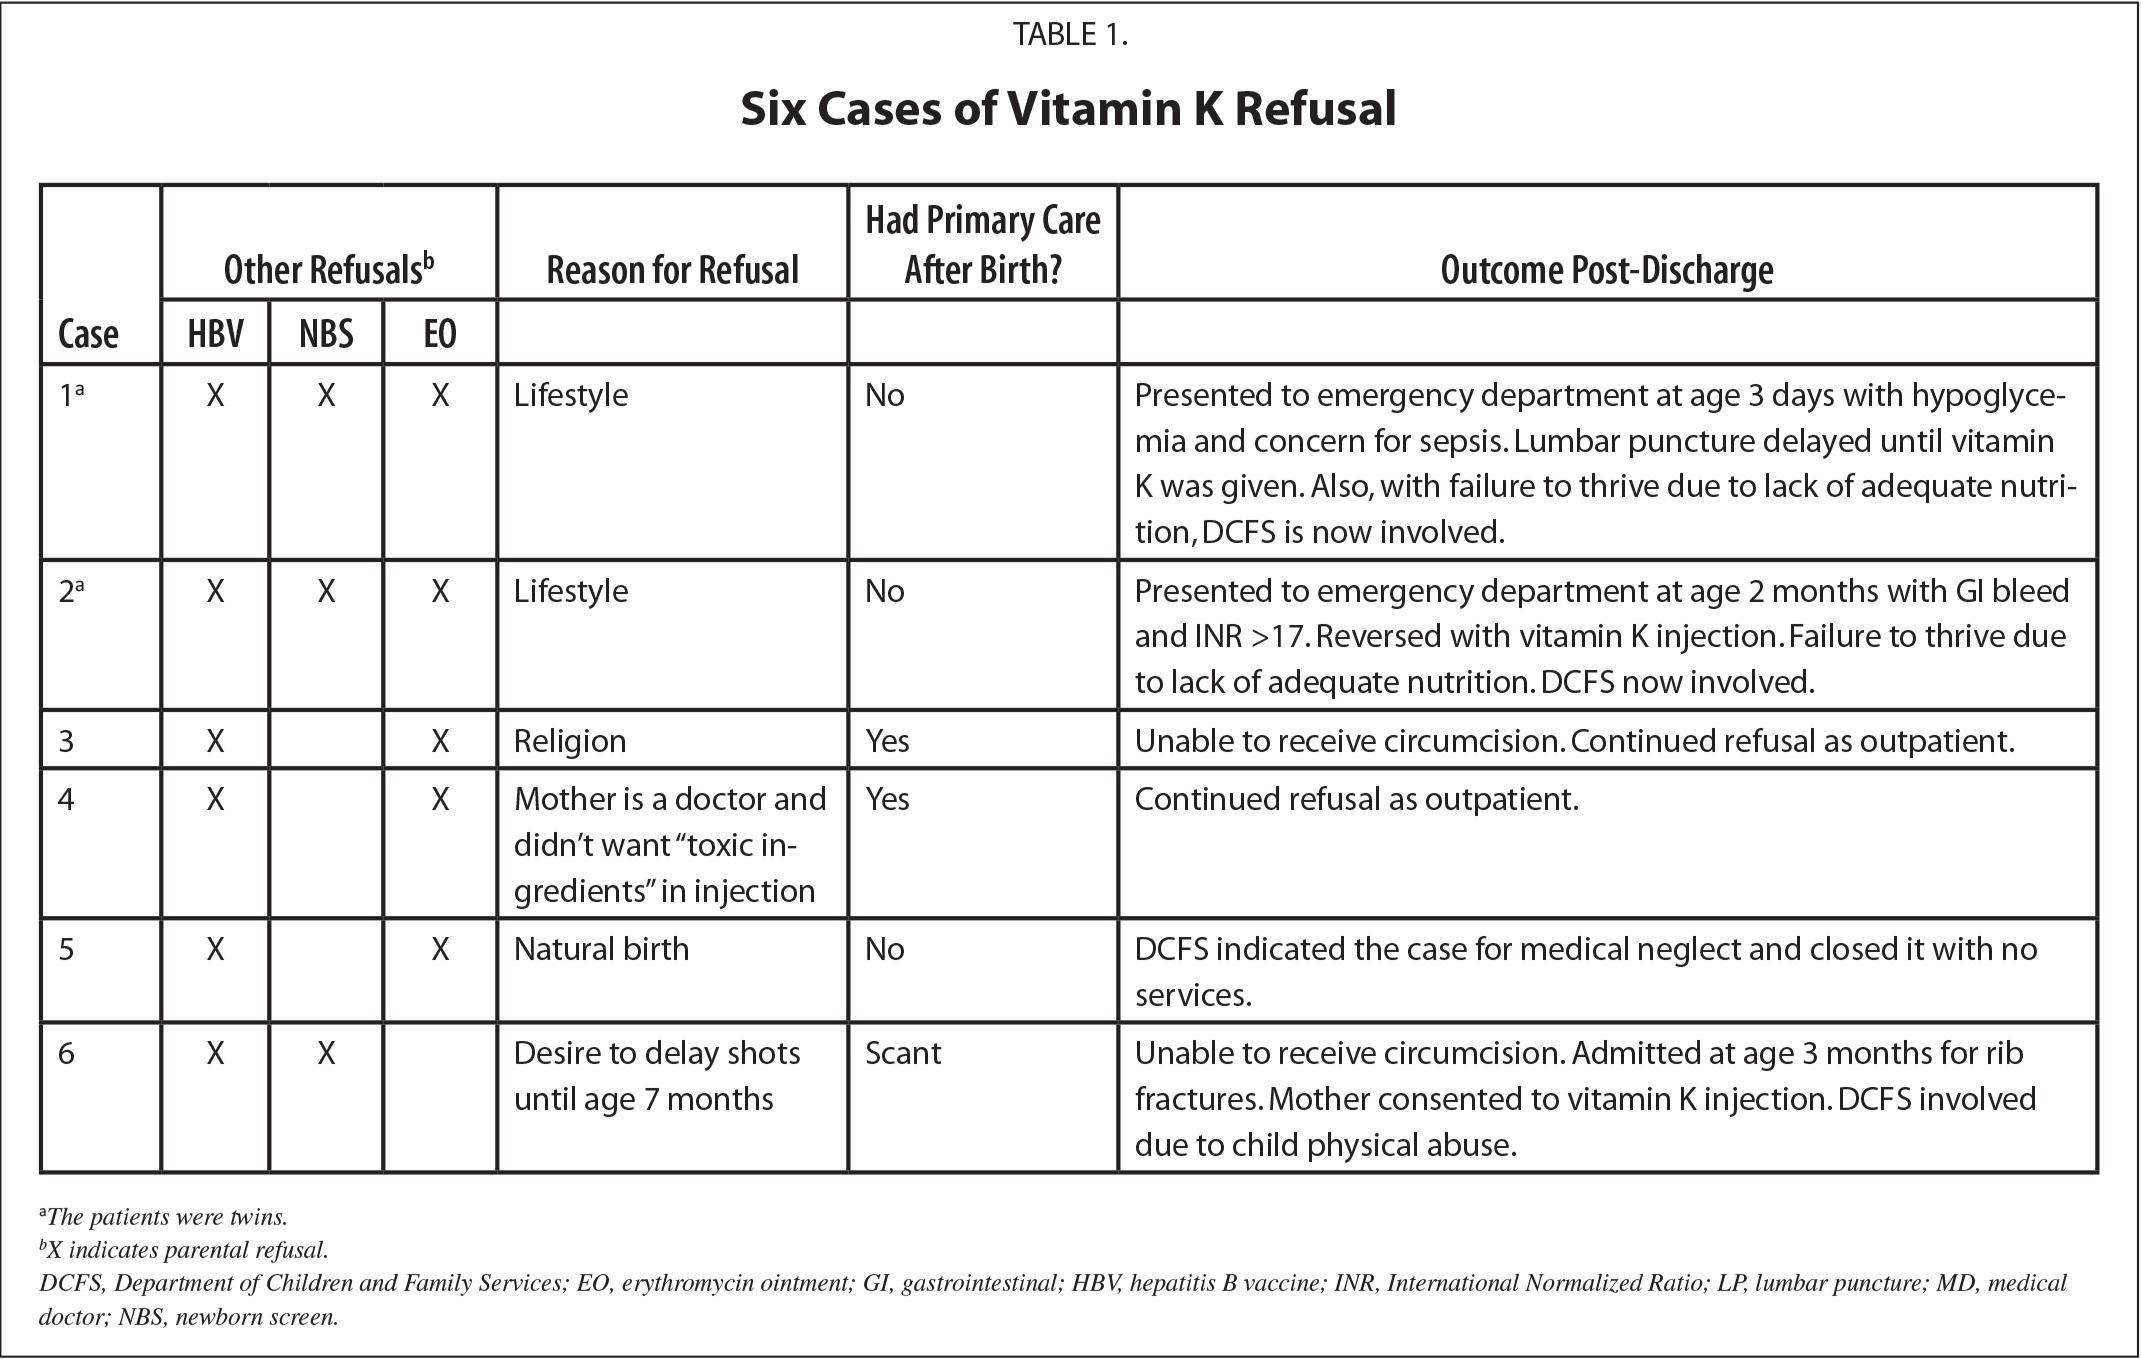 Six Cases of Vitamin K Refusal